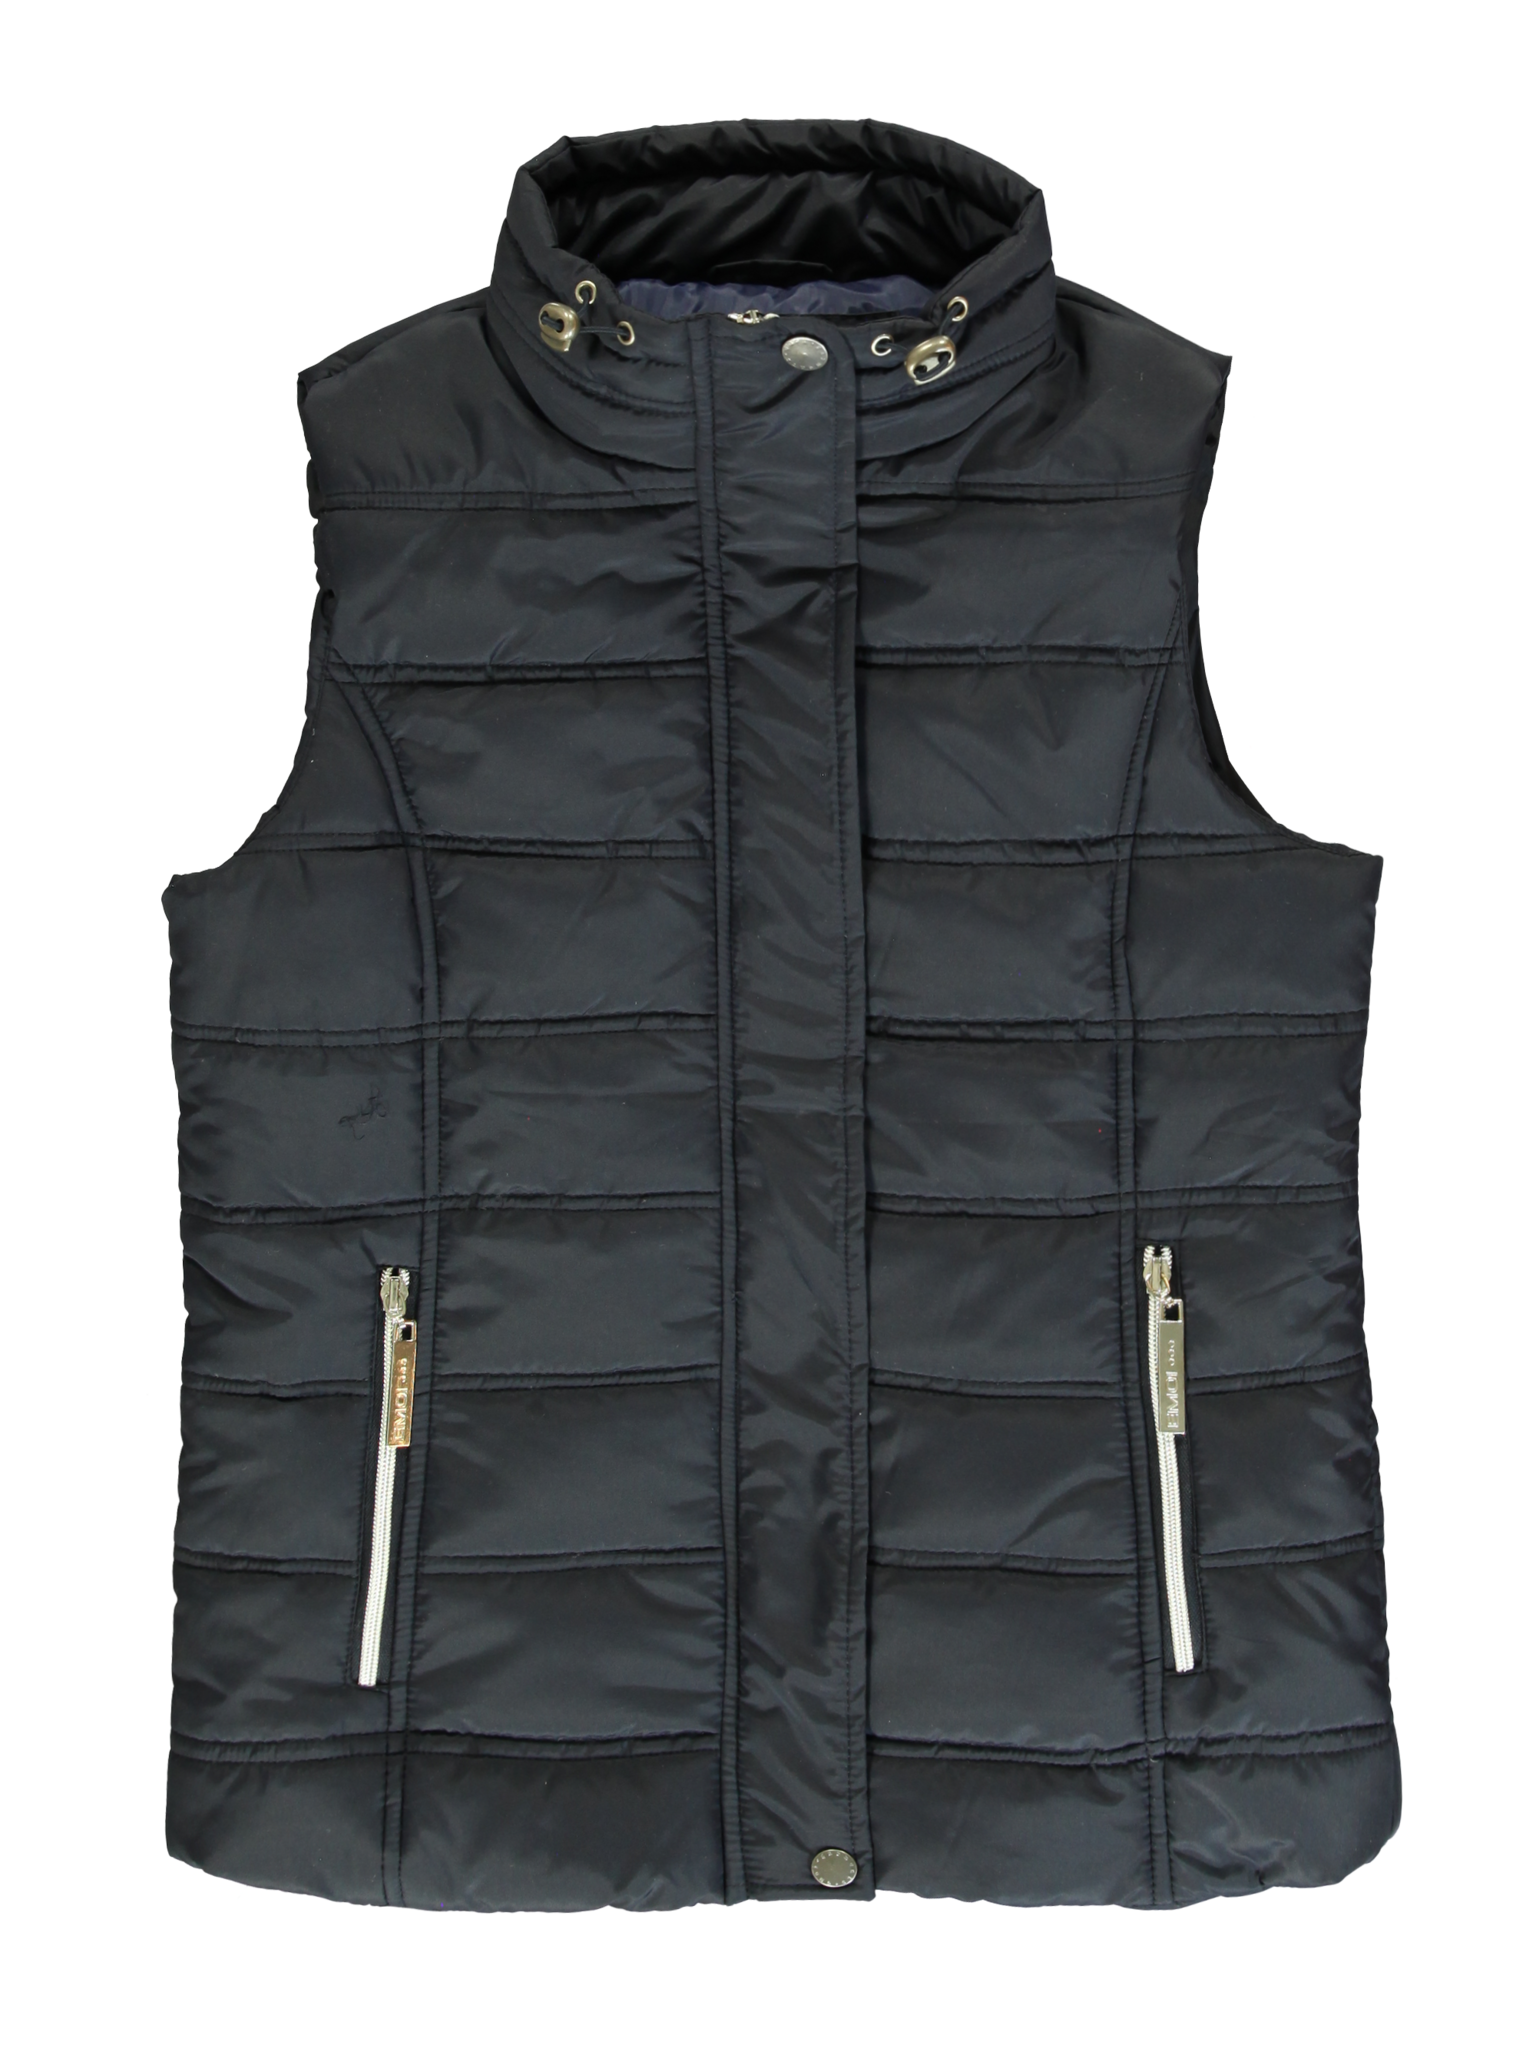 All Brands | Winterproducts Ladies | Bodywarmer | 12 pcs/box